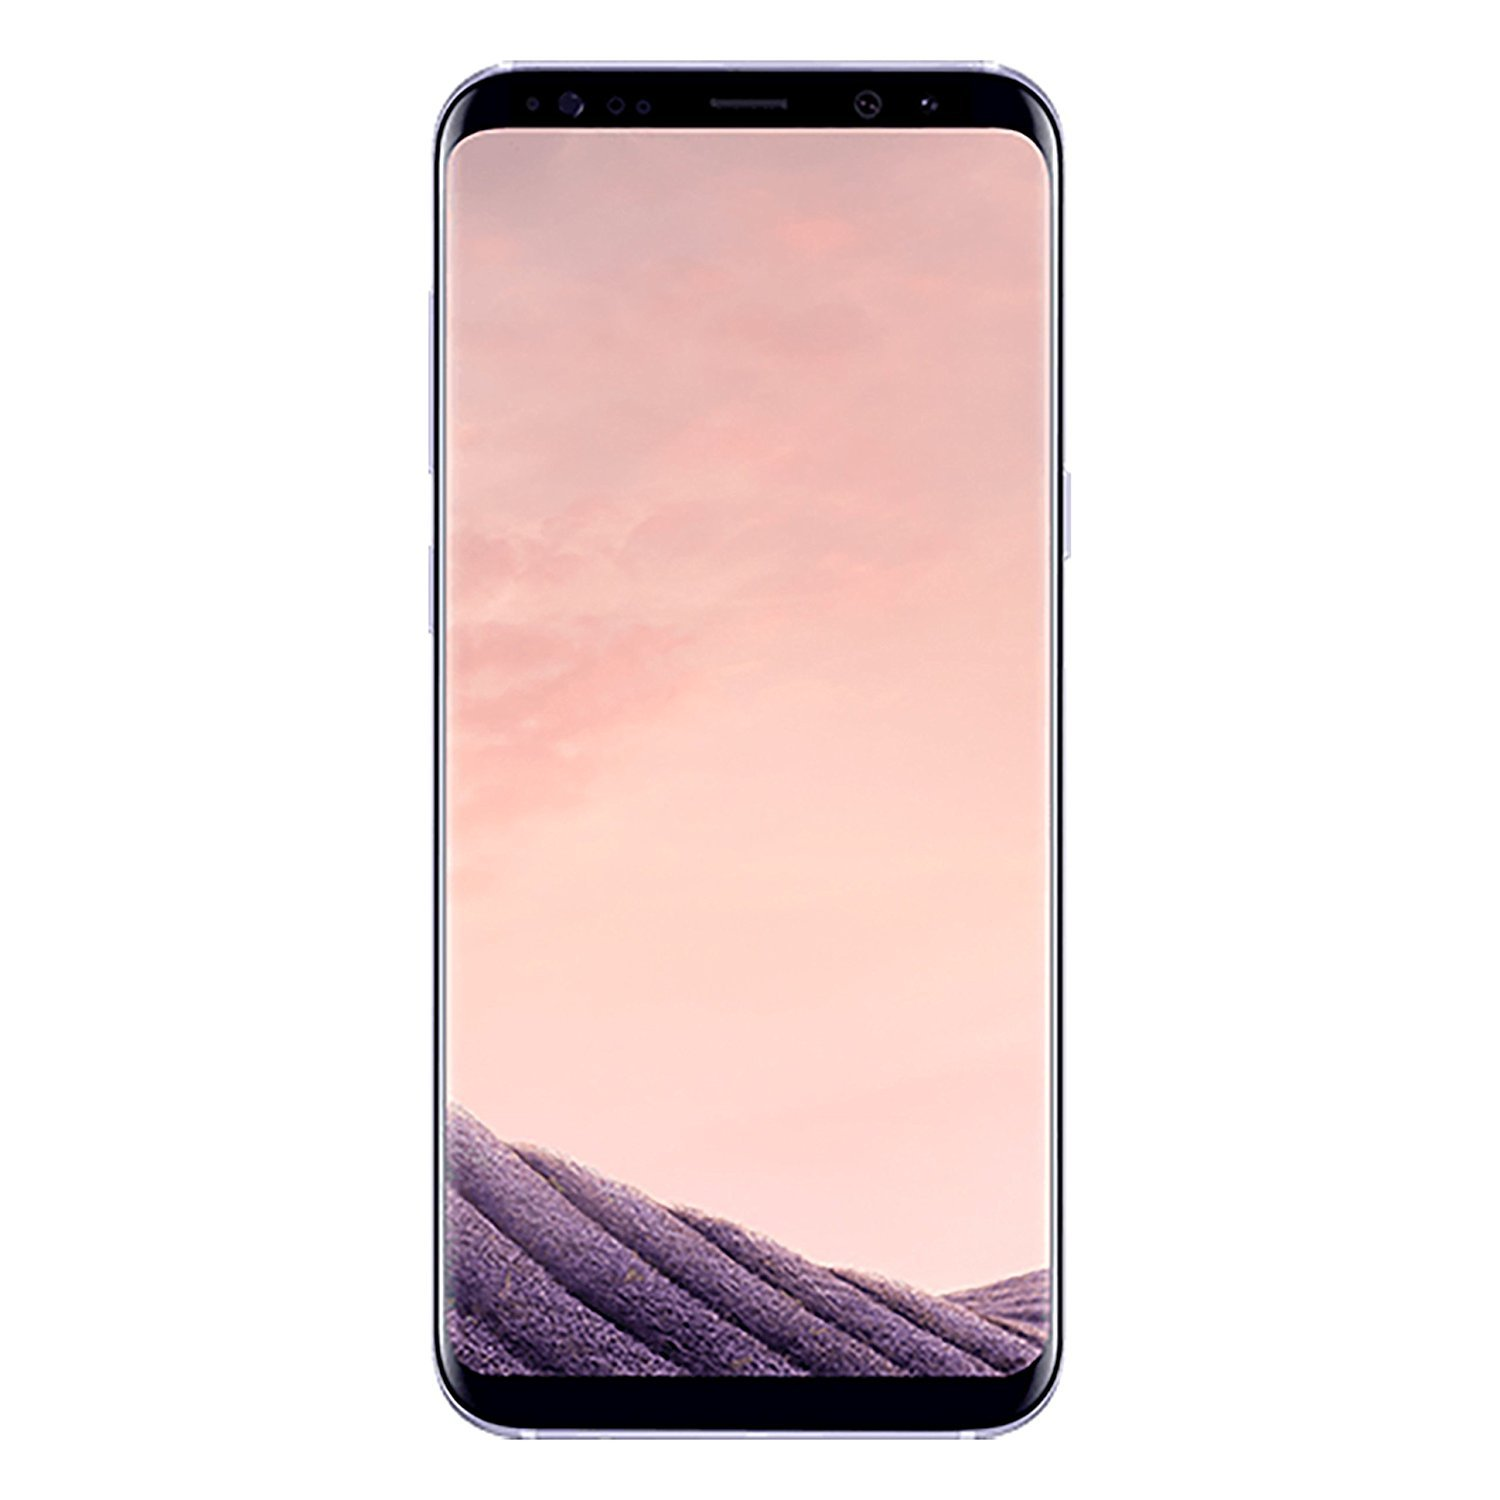 Samsung Galaxy S8 (G950u GSM only) 5.8' Unlocked Smartphone for All GSM Carriers - Midnight Black (Certified Refurbished)